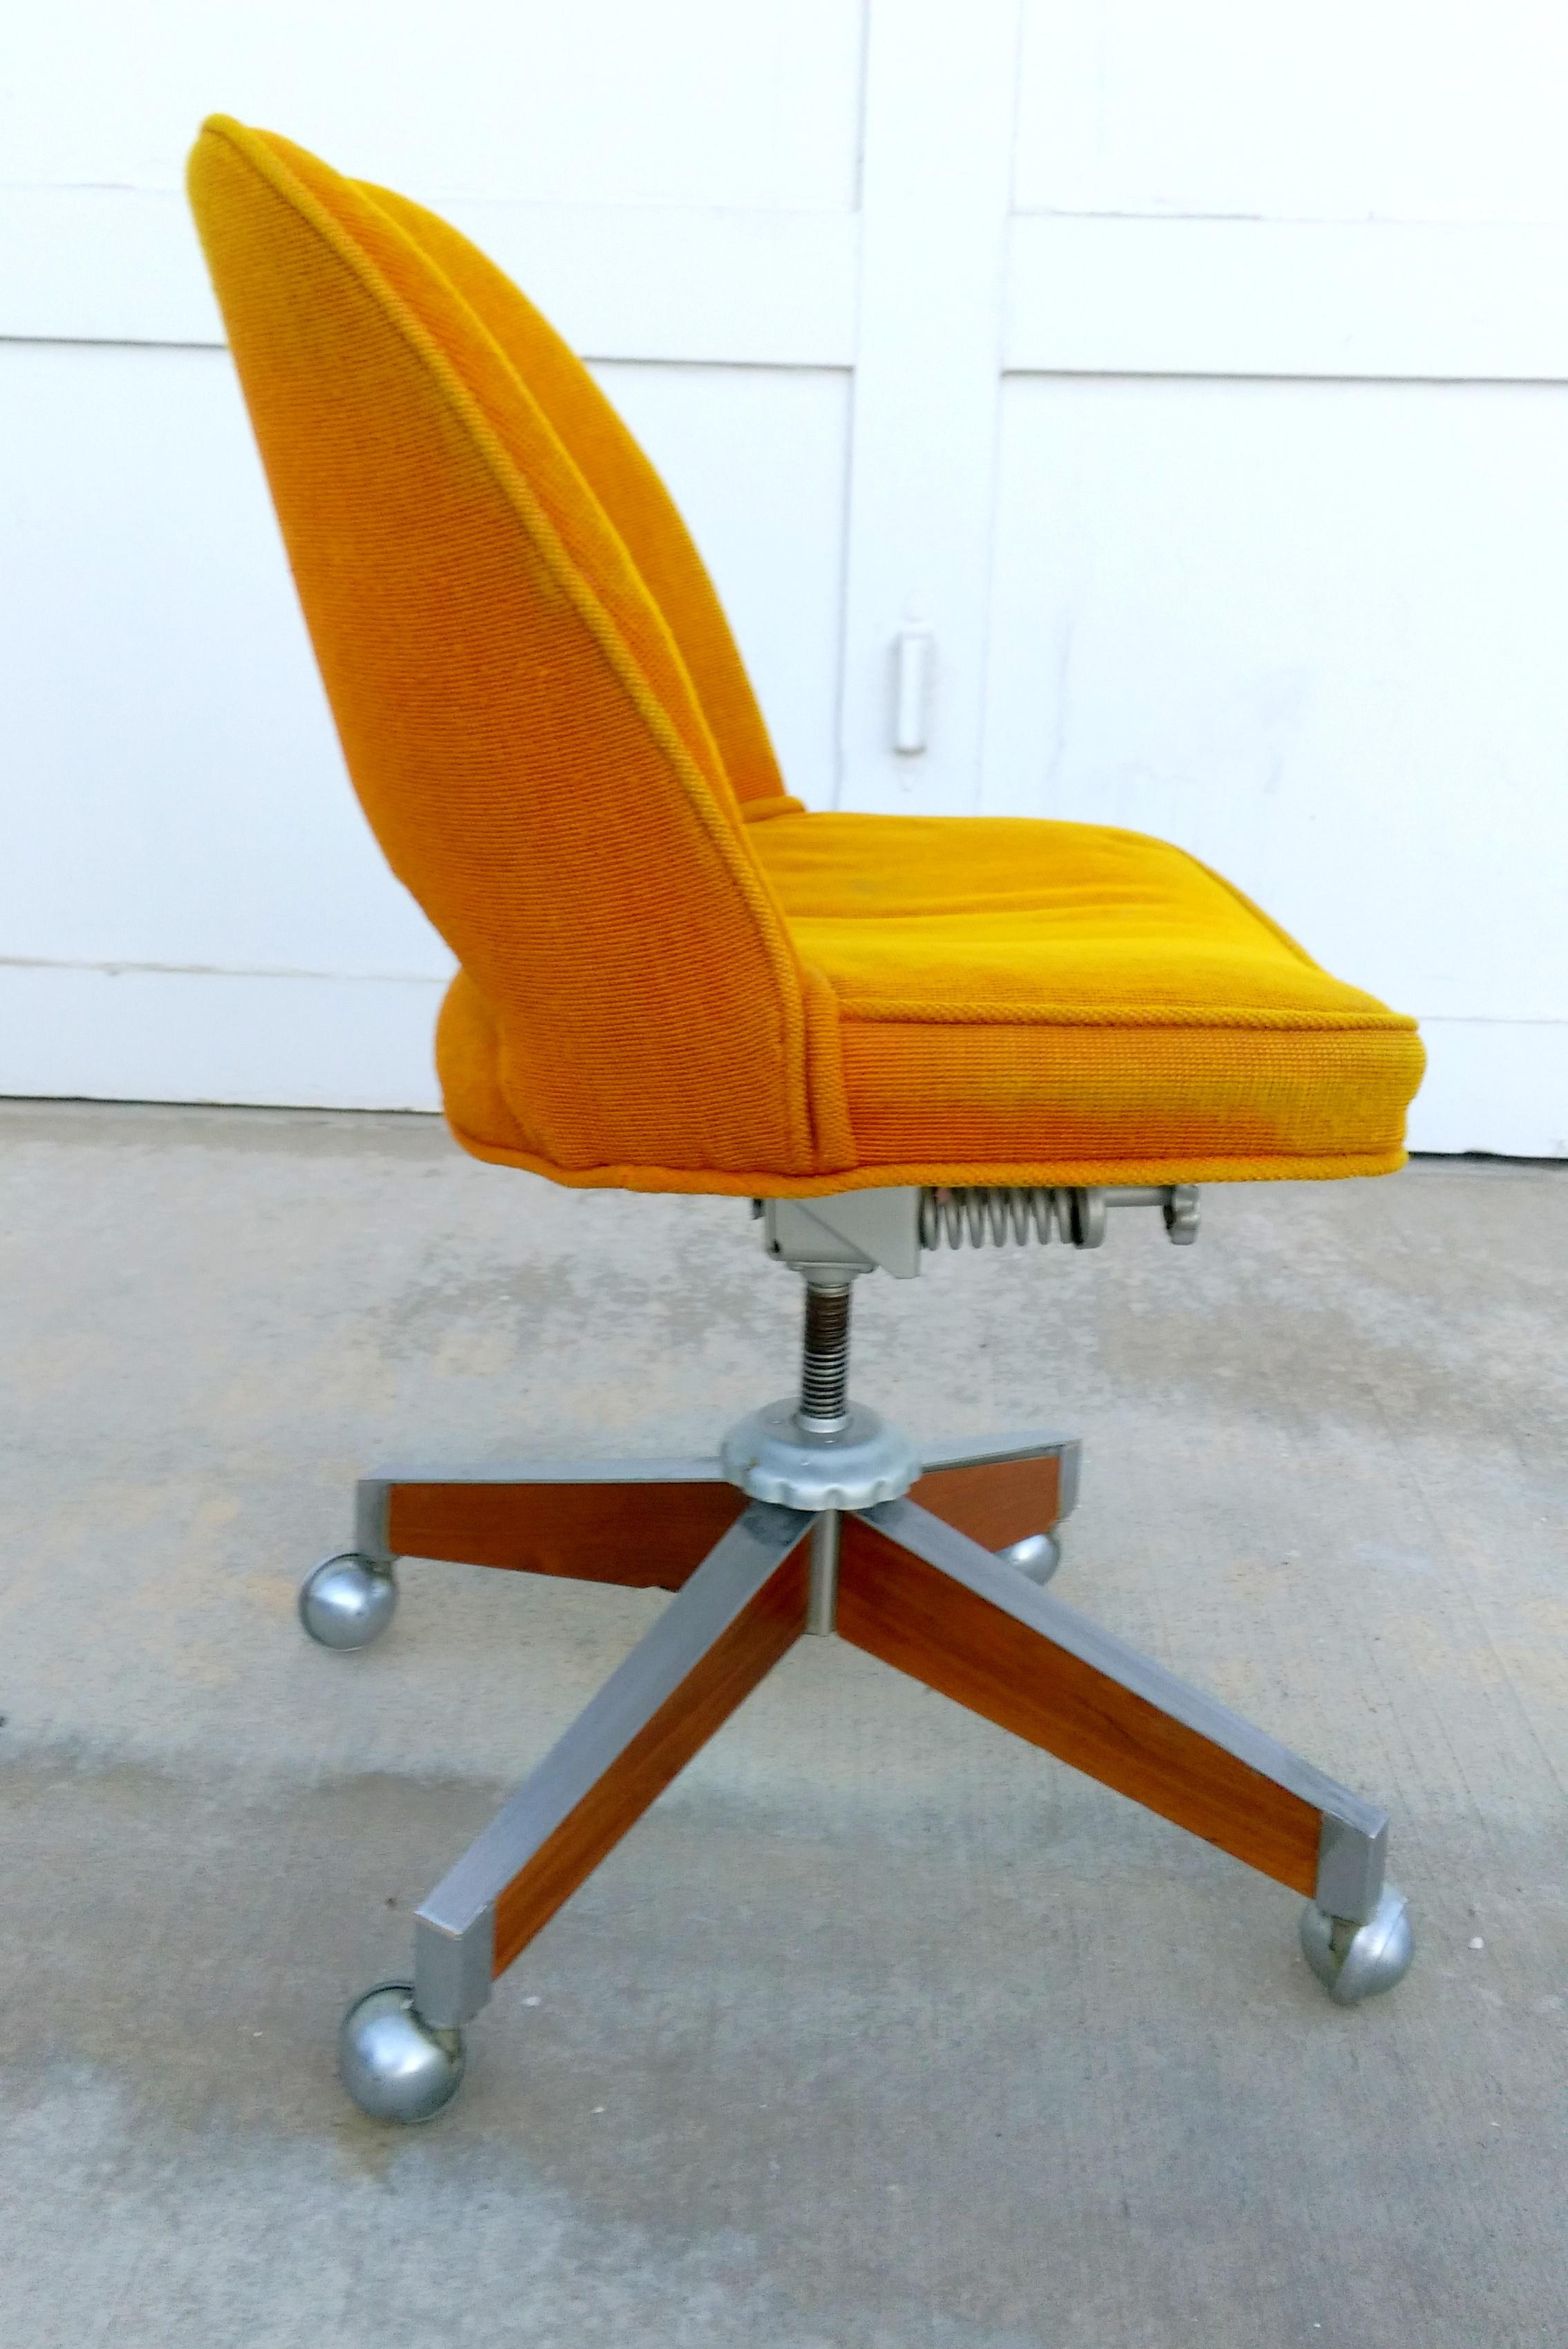 Vintage SENG Chicago Task Chair For Sale - Image 4 of 10  sc 1 st  Chairish & Vintage SENG Chicago Task Chair | Chairish